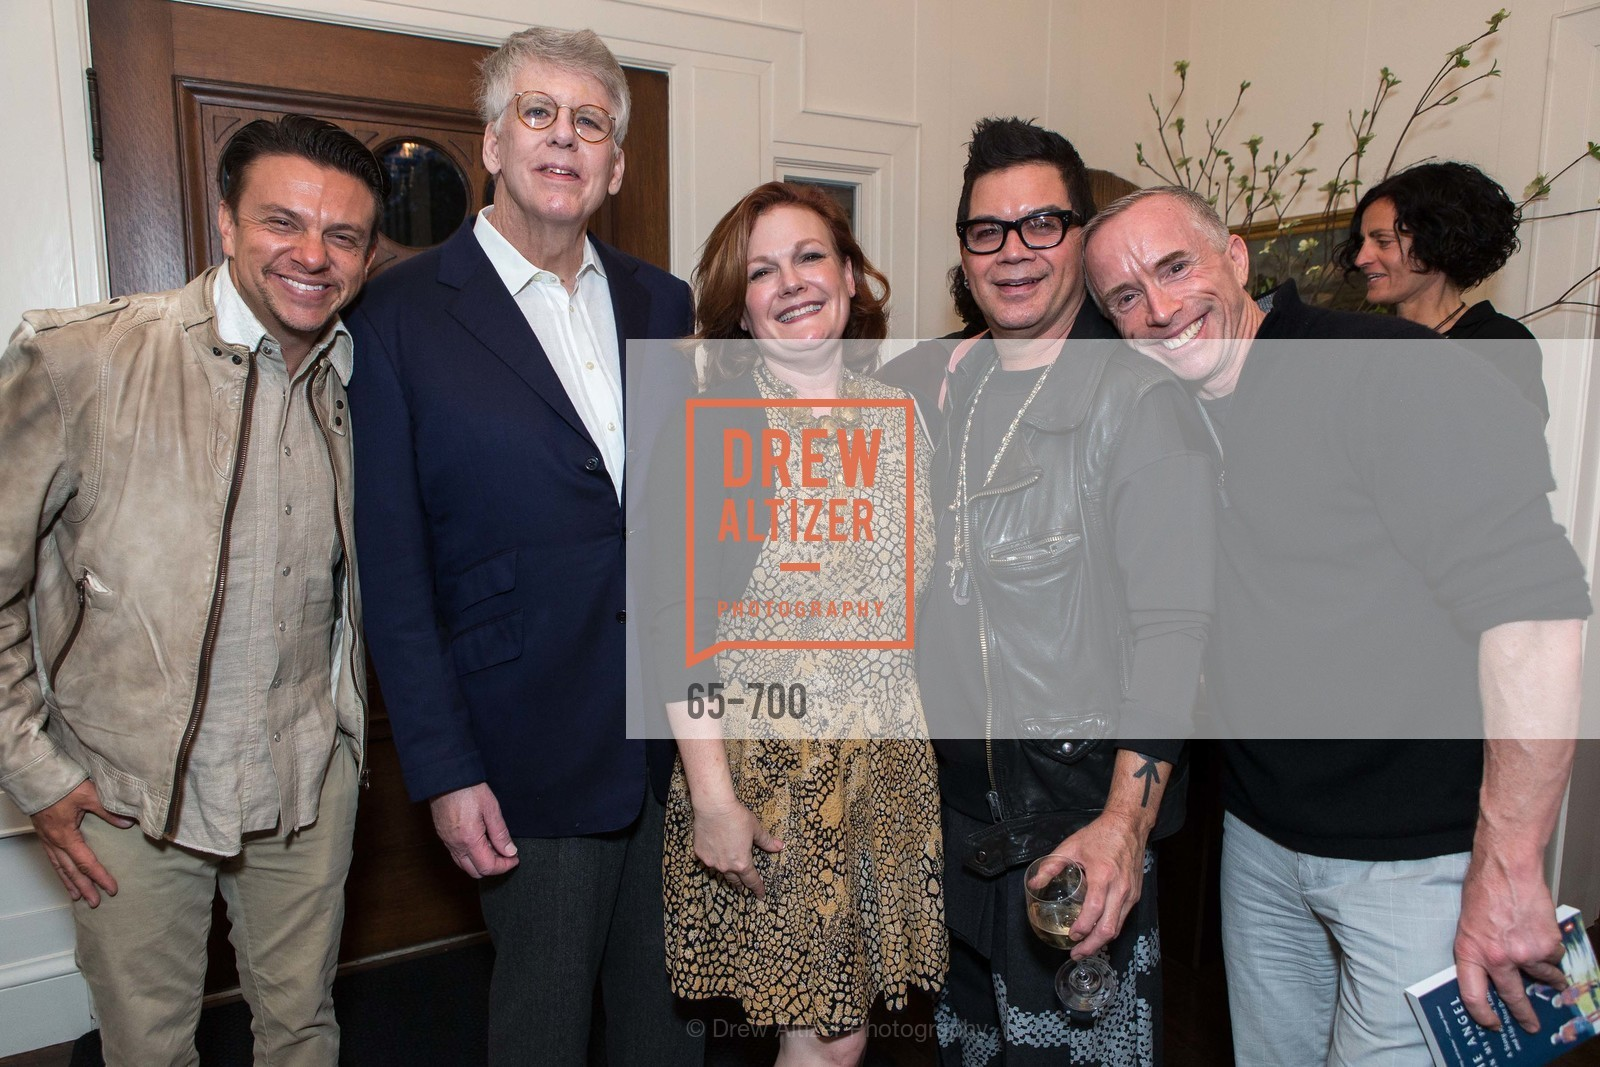 Jennifer Raiser, David Reposar, Maurice Kelly, SUKEY FORBES' Book Signing, US, May 7th, 2015,Drew Altizer, Drew Altizer Photography, full-service agency, private events, San Francisco photographer, photographer california